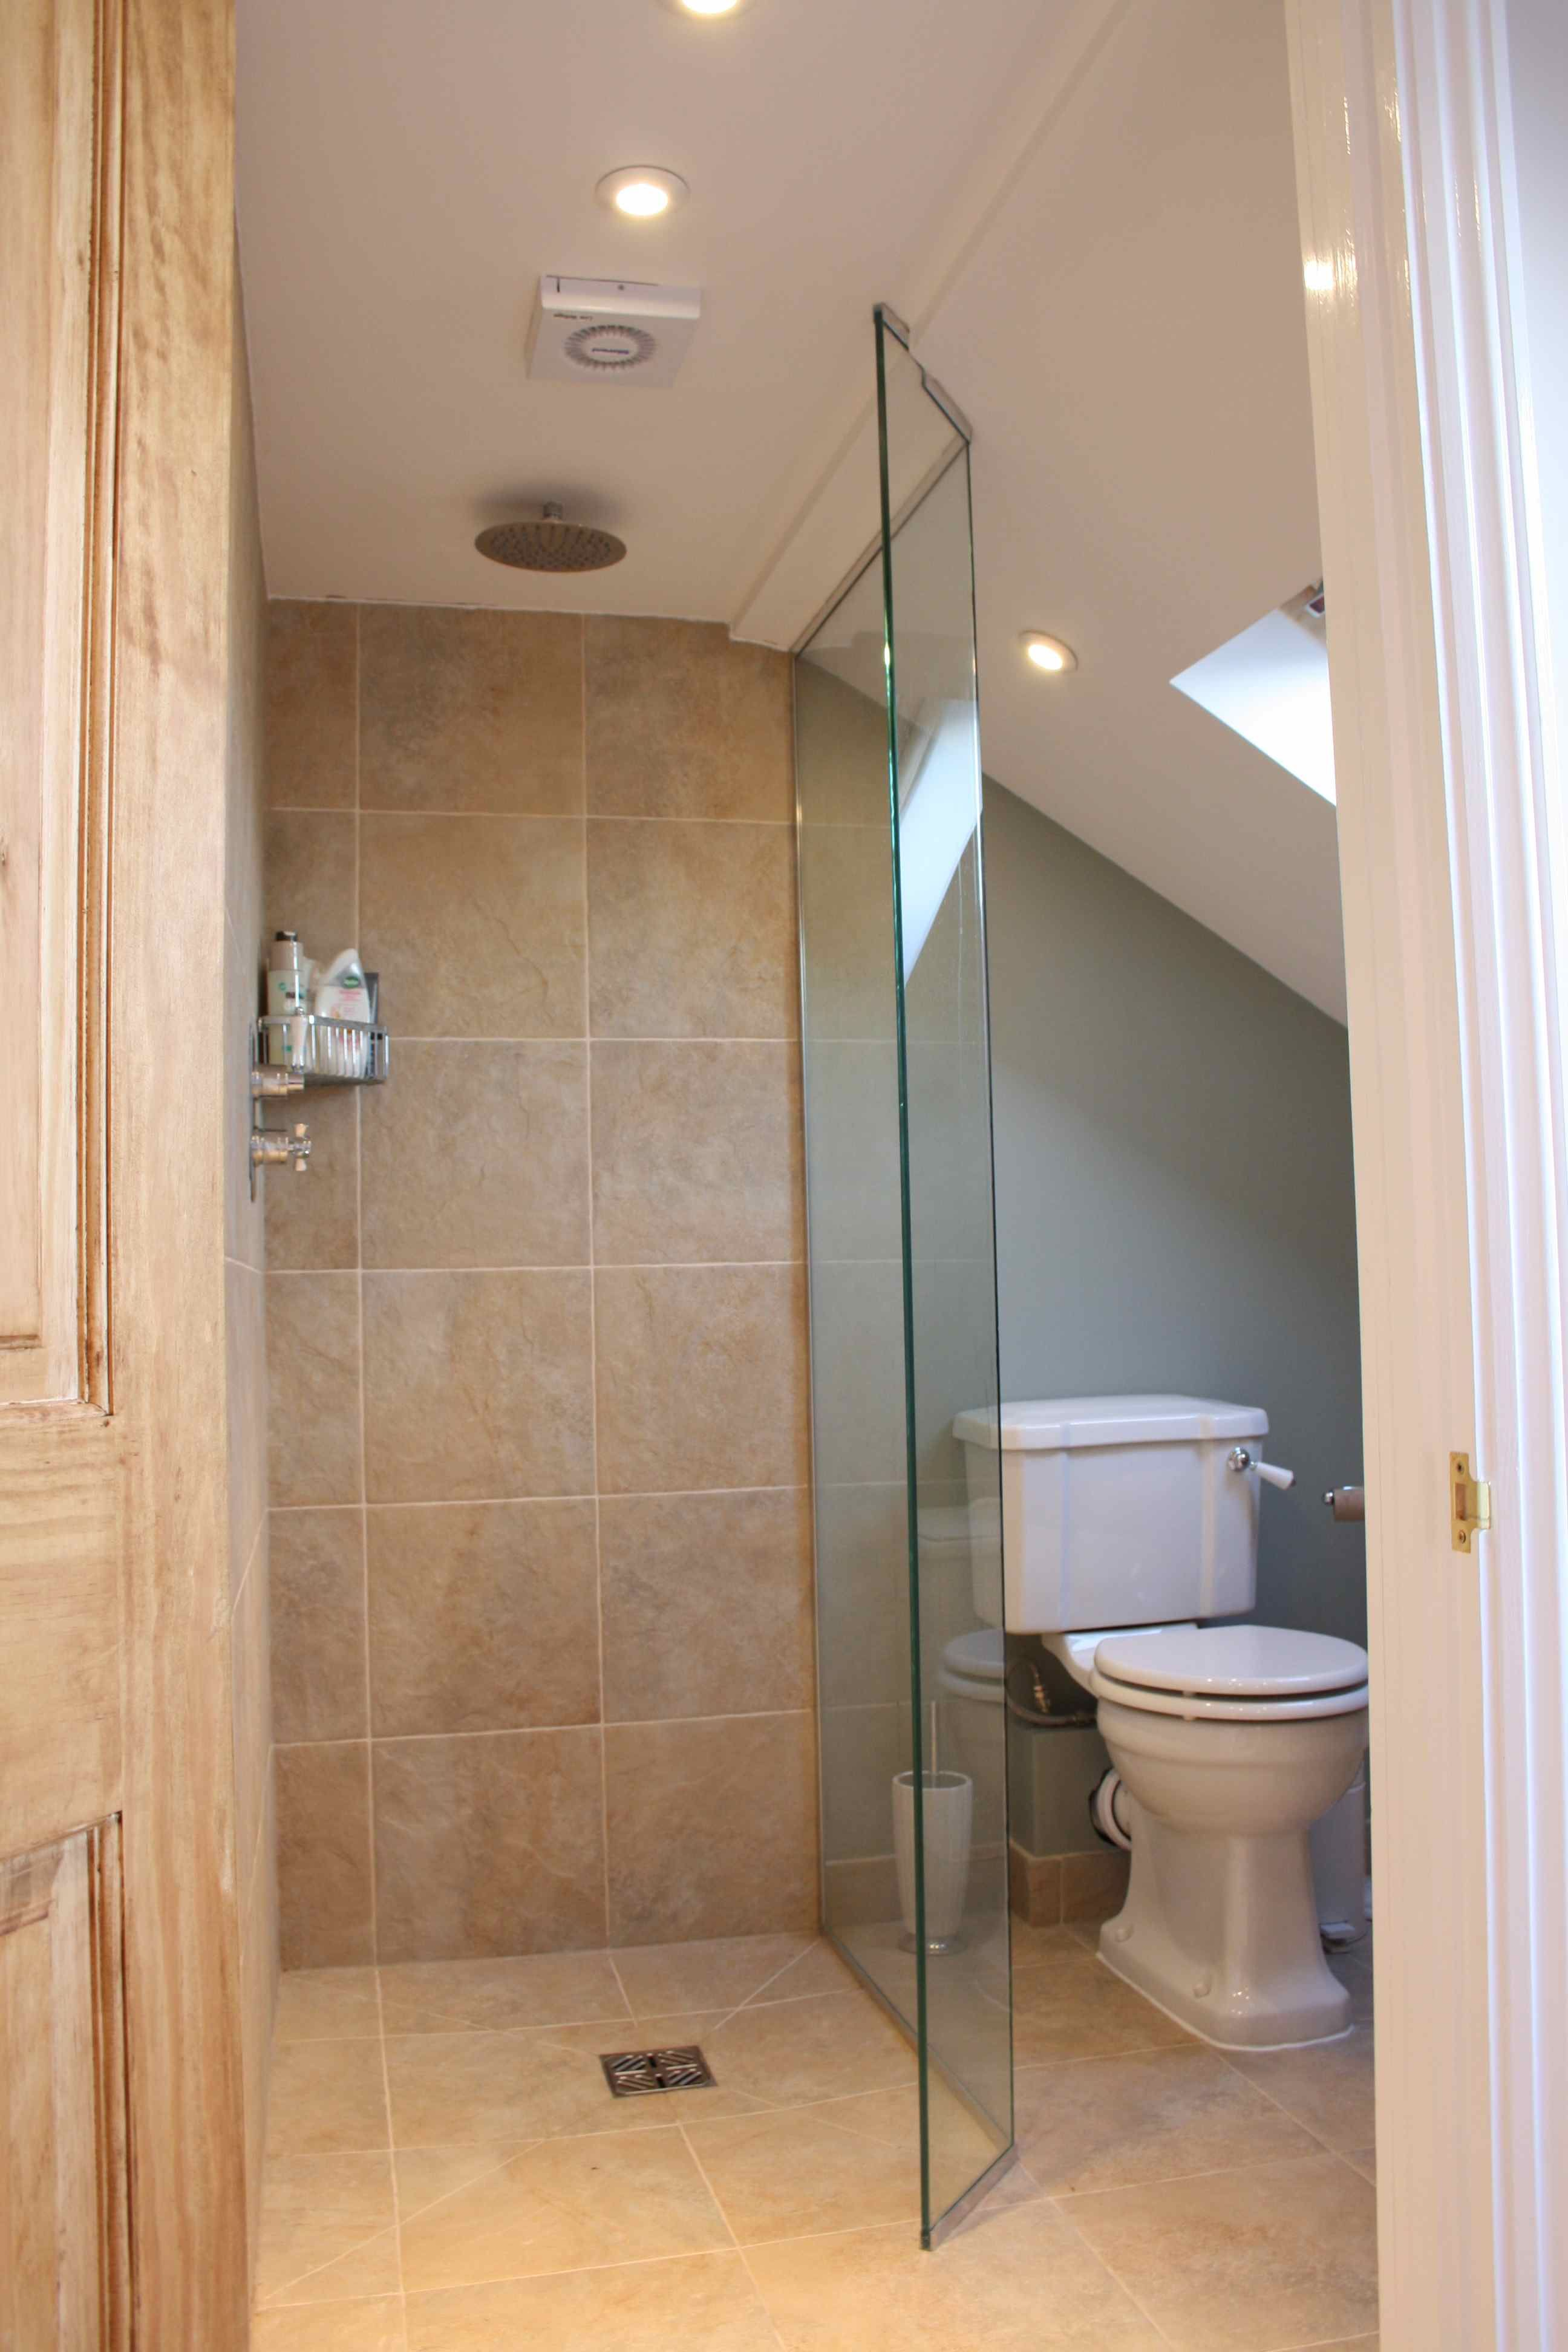 Best Images Photos And Pictures Gallery About Small Wet Room Ideas Wetroom Wetrooms Related Search Walk In